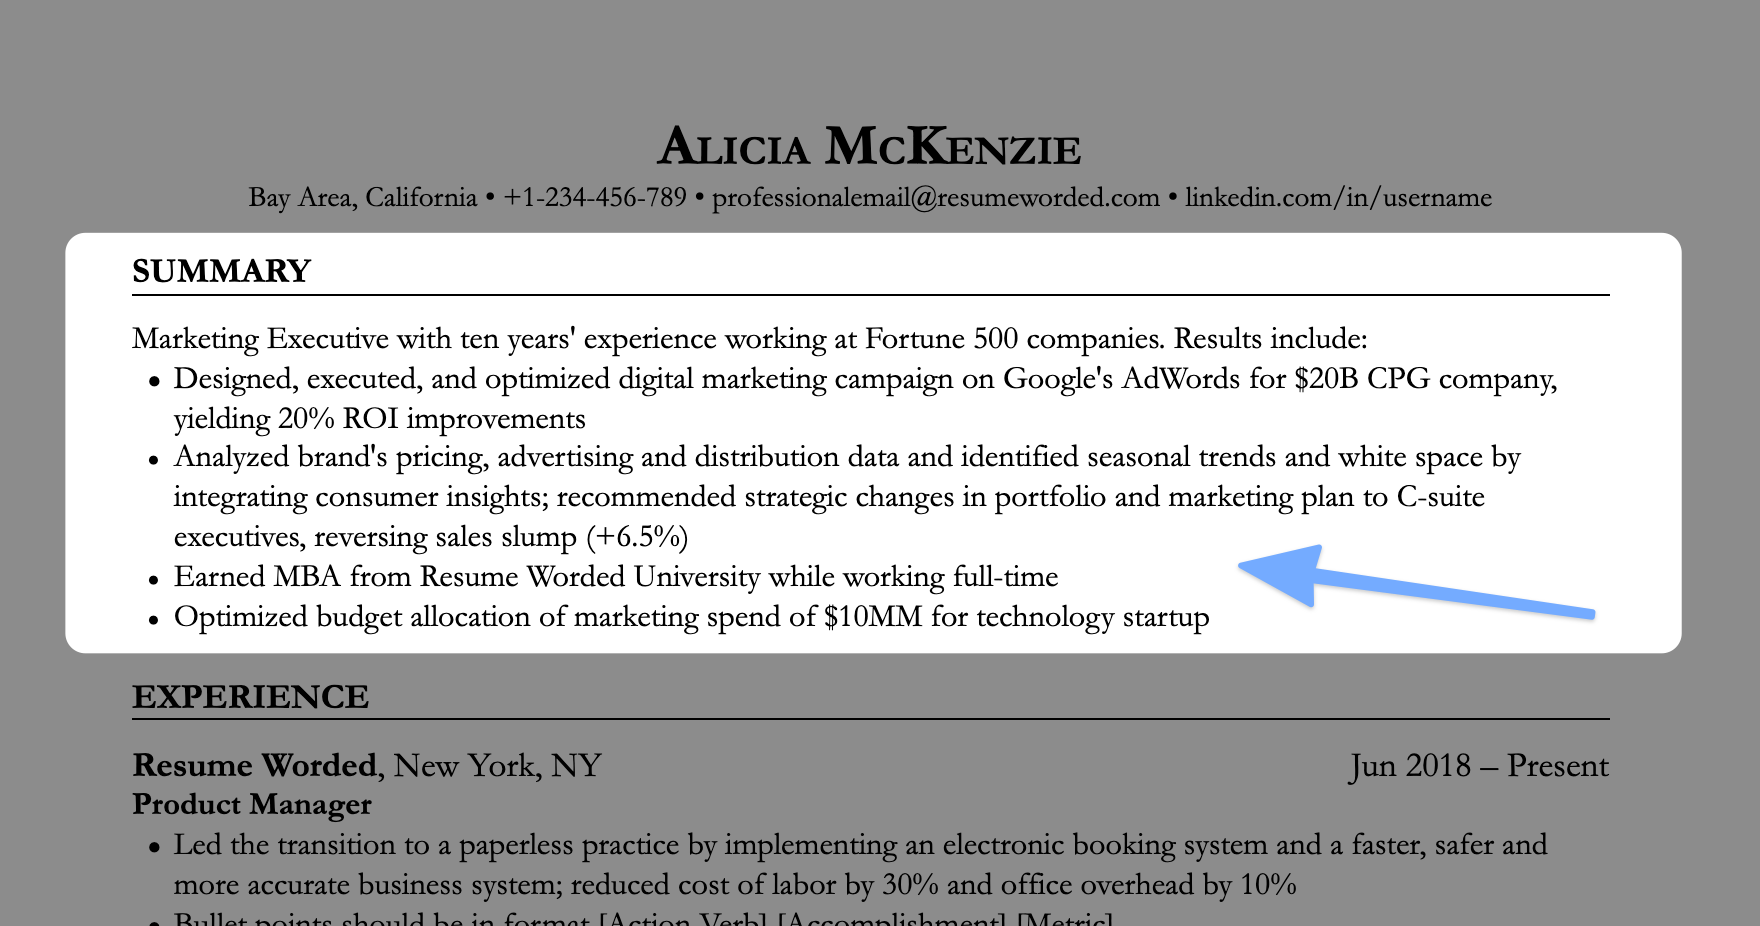 Resume summary example on a marketing executive's resume (screenshot)